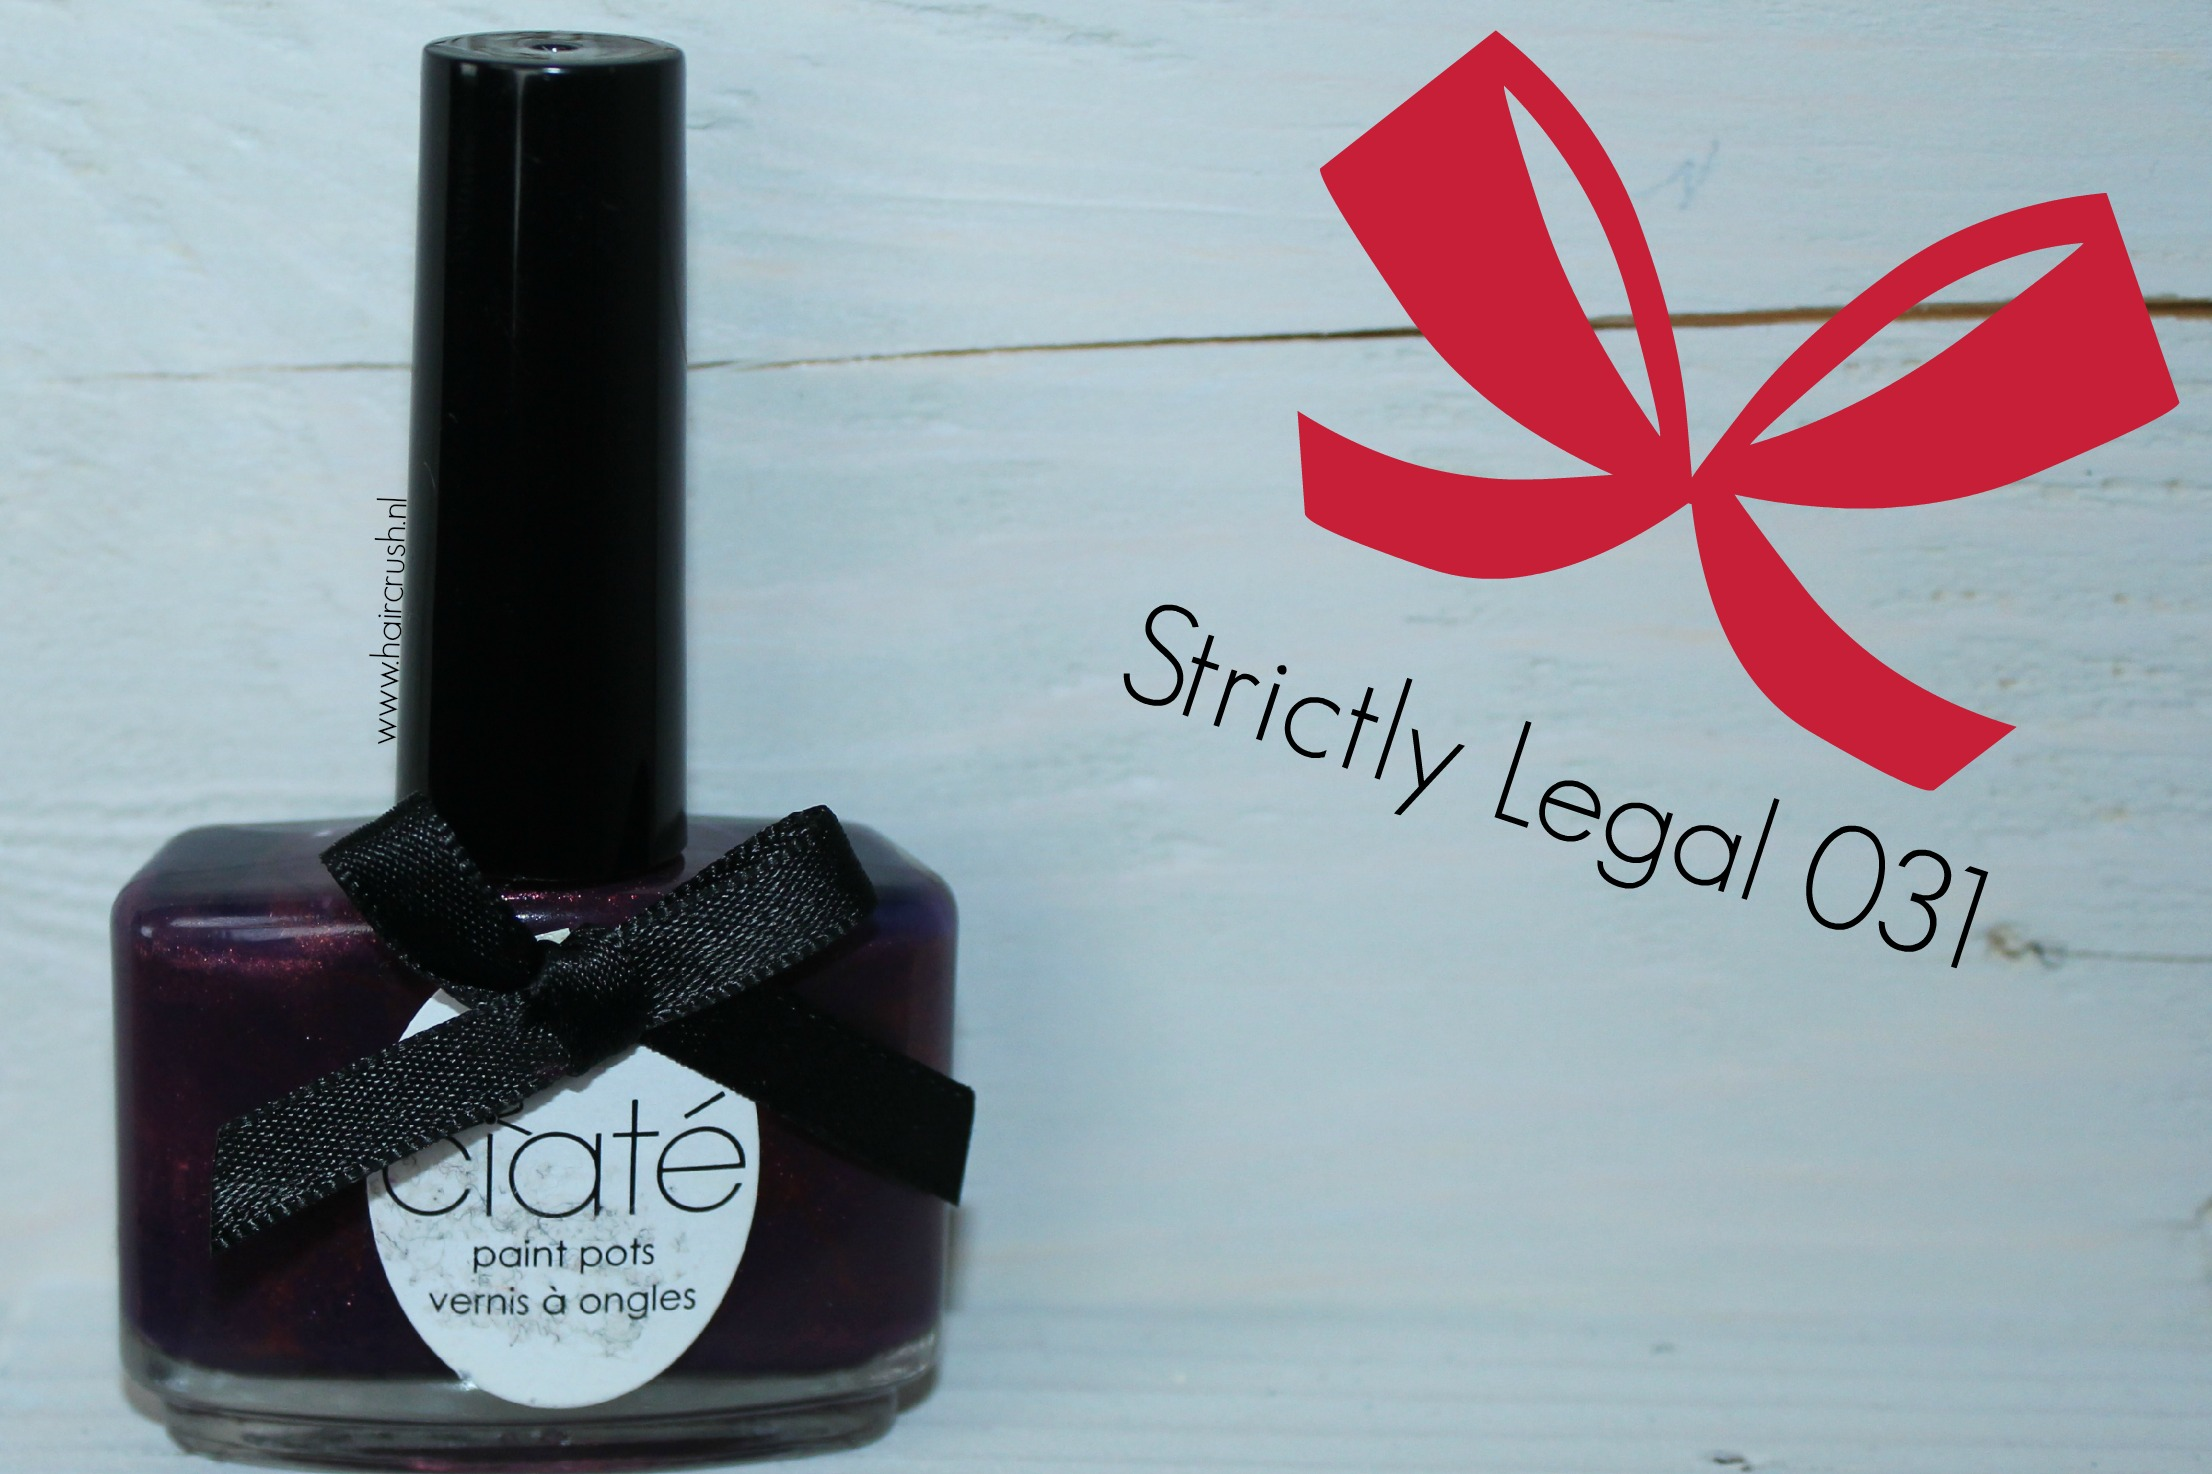 Strictly legal 031